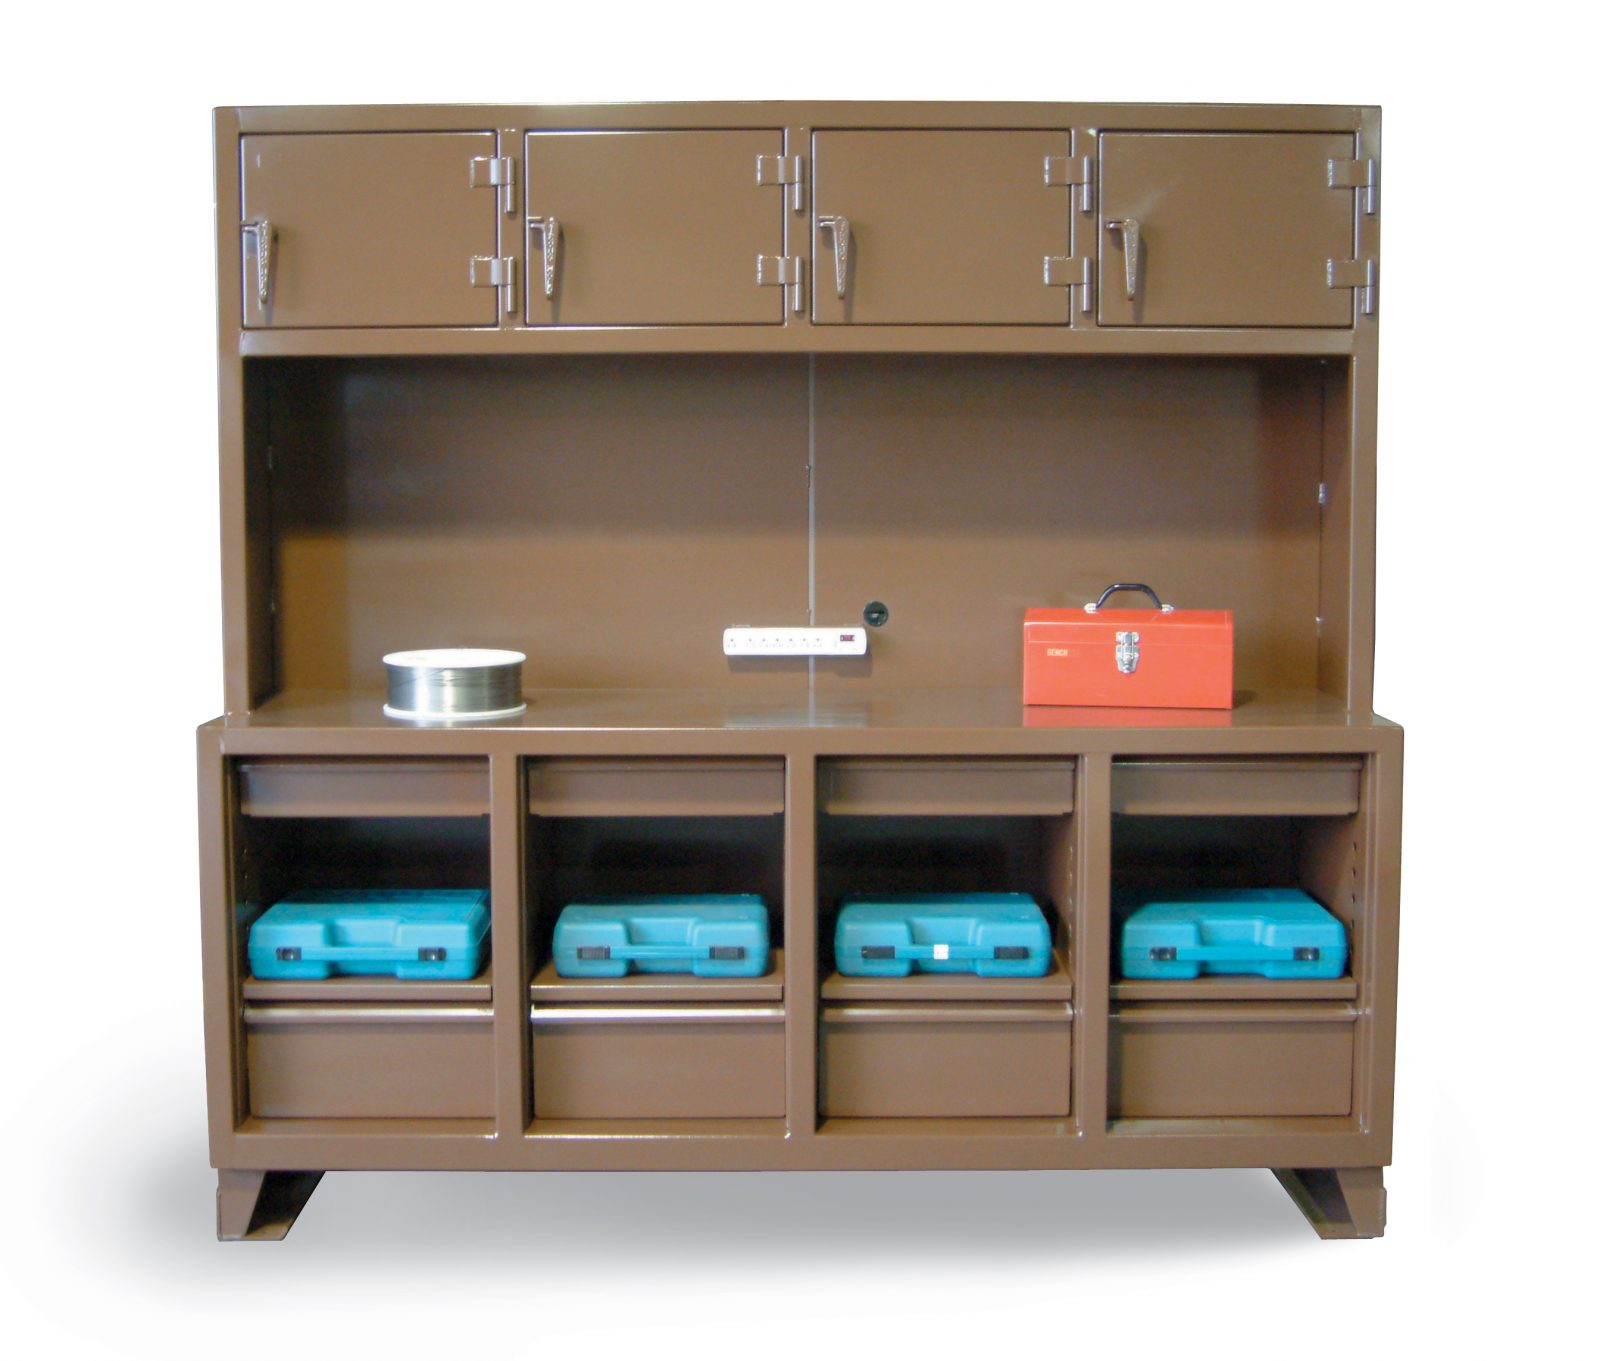 Workbench Storage with 4 Upper Compartments